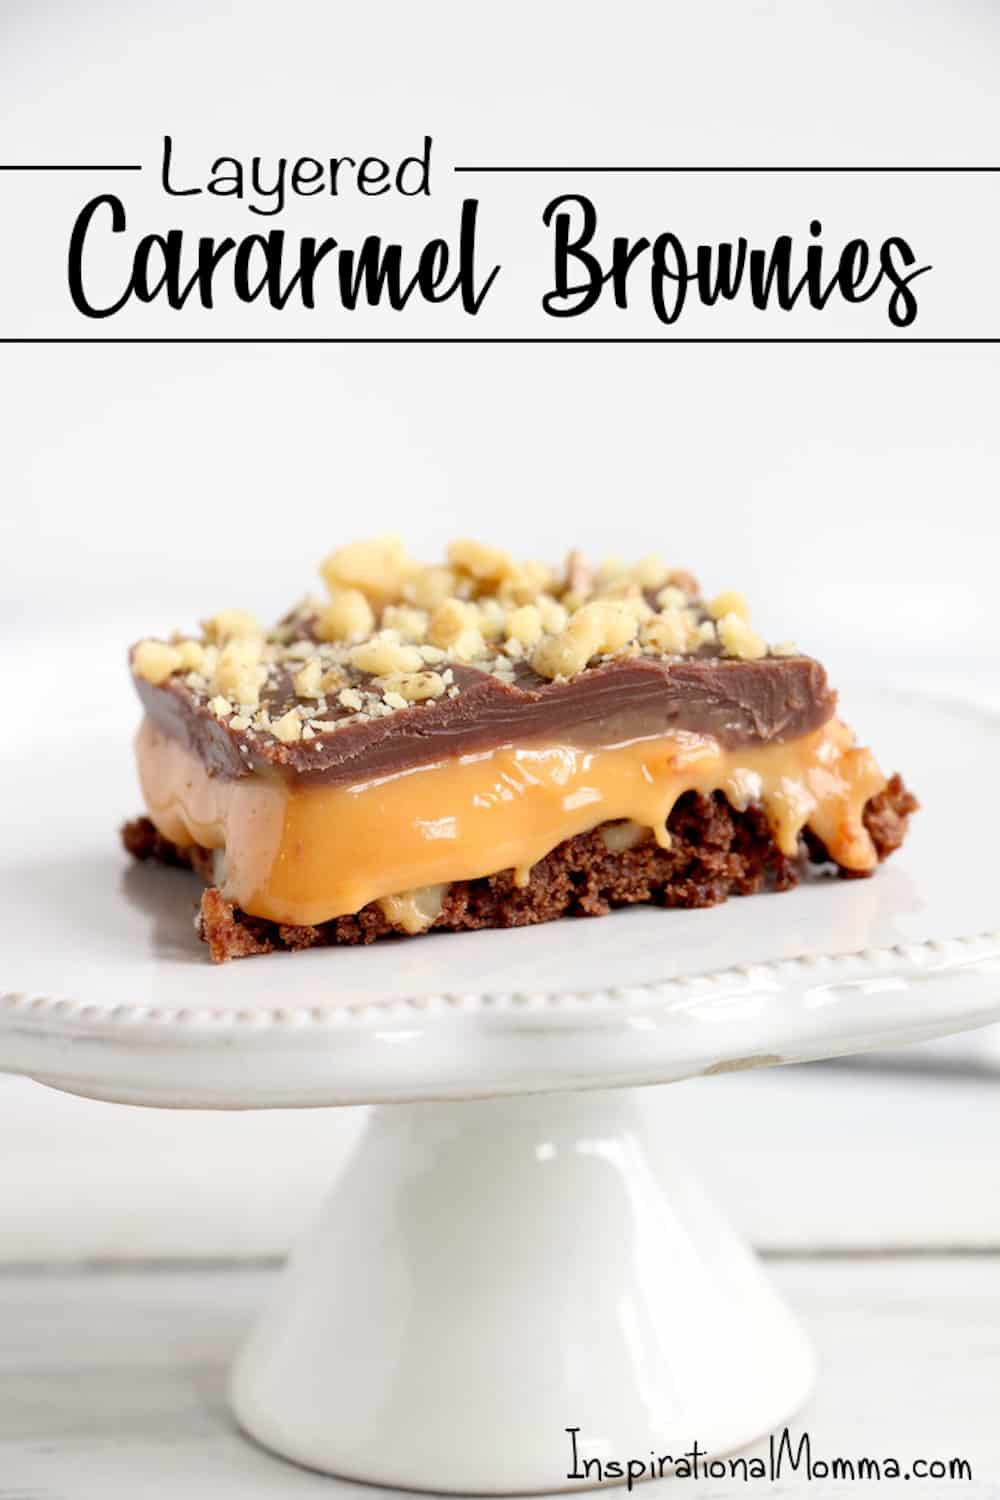 These Layered Caramel Brownies have it all. A chewy brownie crust and a gooey caramel middle, all finished off with a milk chocolatey top! #inspirationalmomma #caramelbrownies #layered #dessert #desserts #recipe #caramel #chocolate #brownies